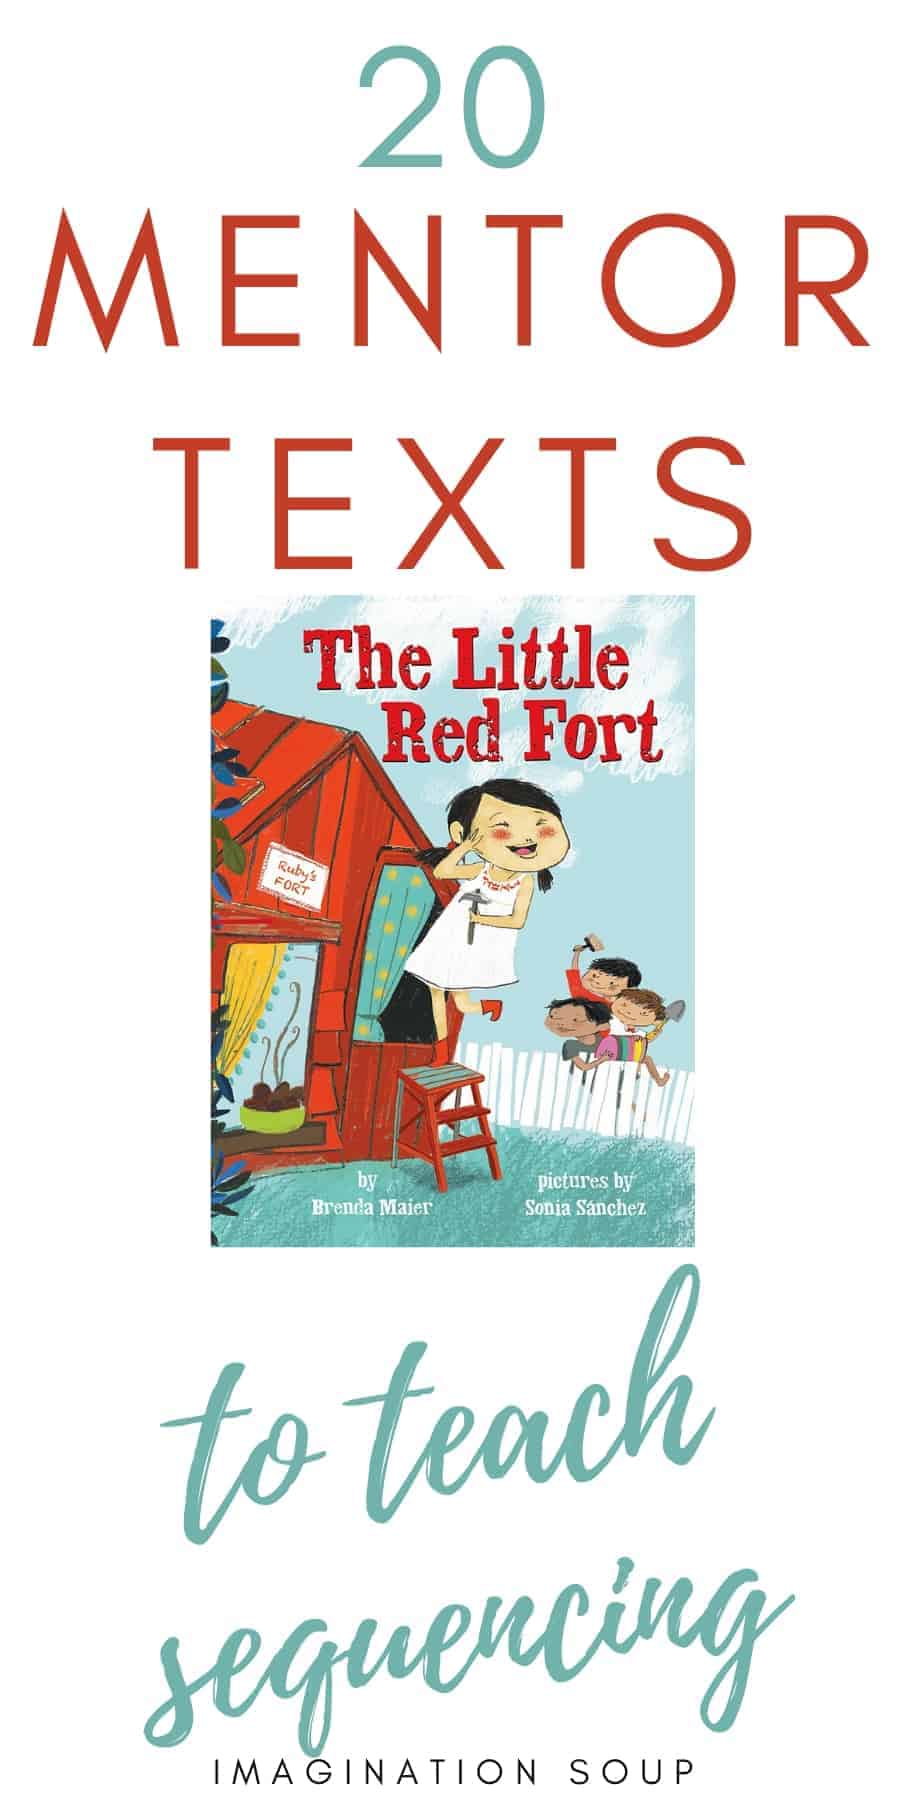 mentor texts to teach sequence